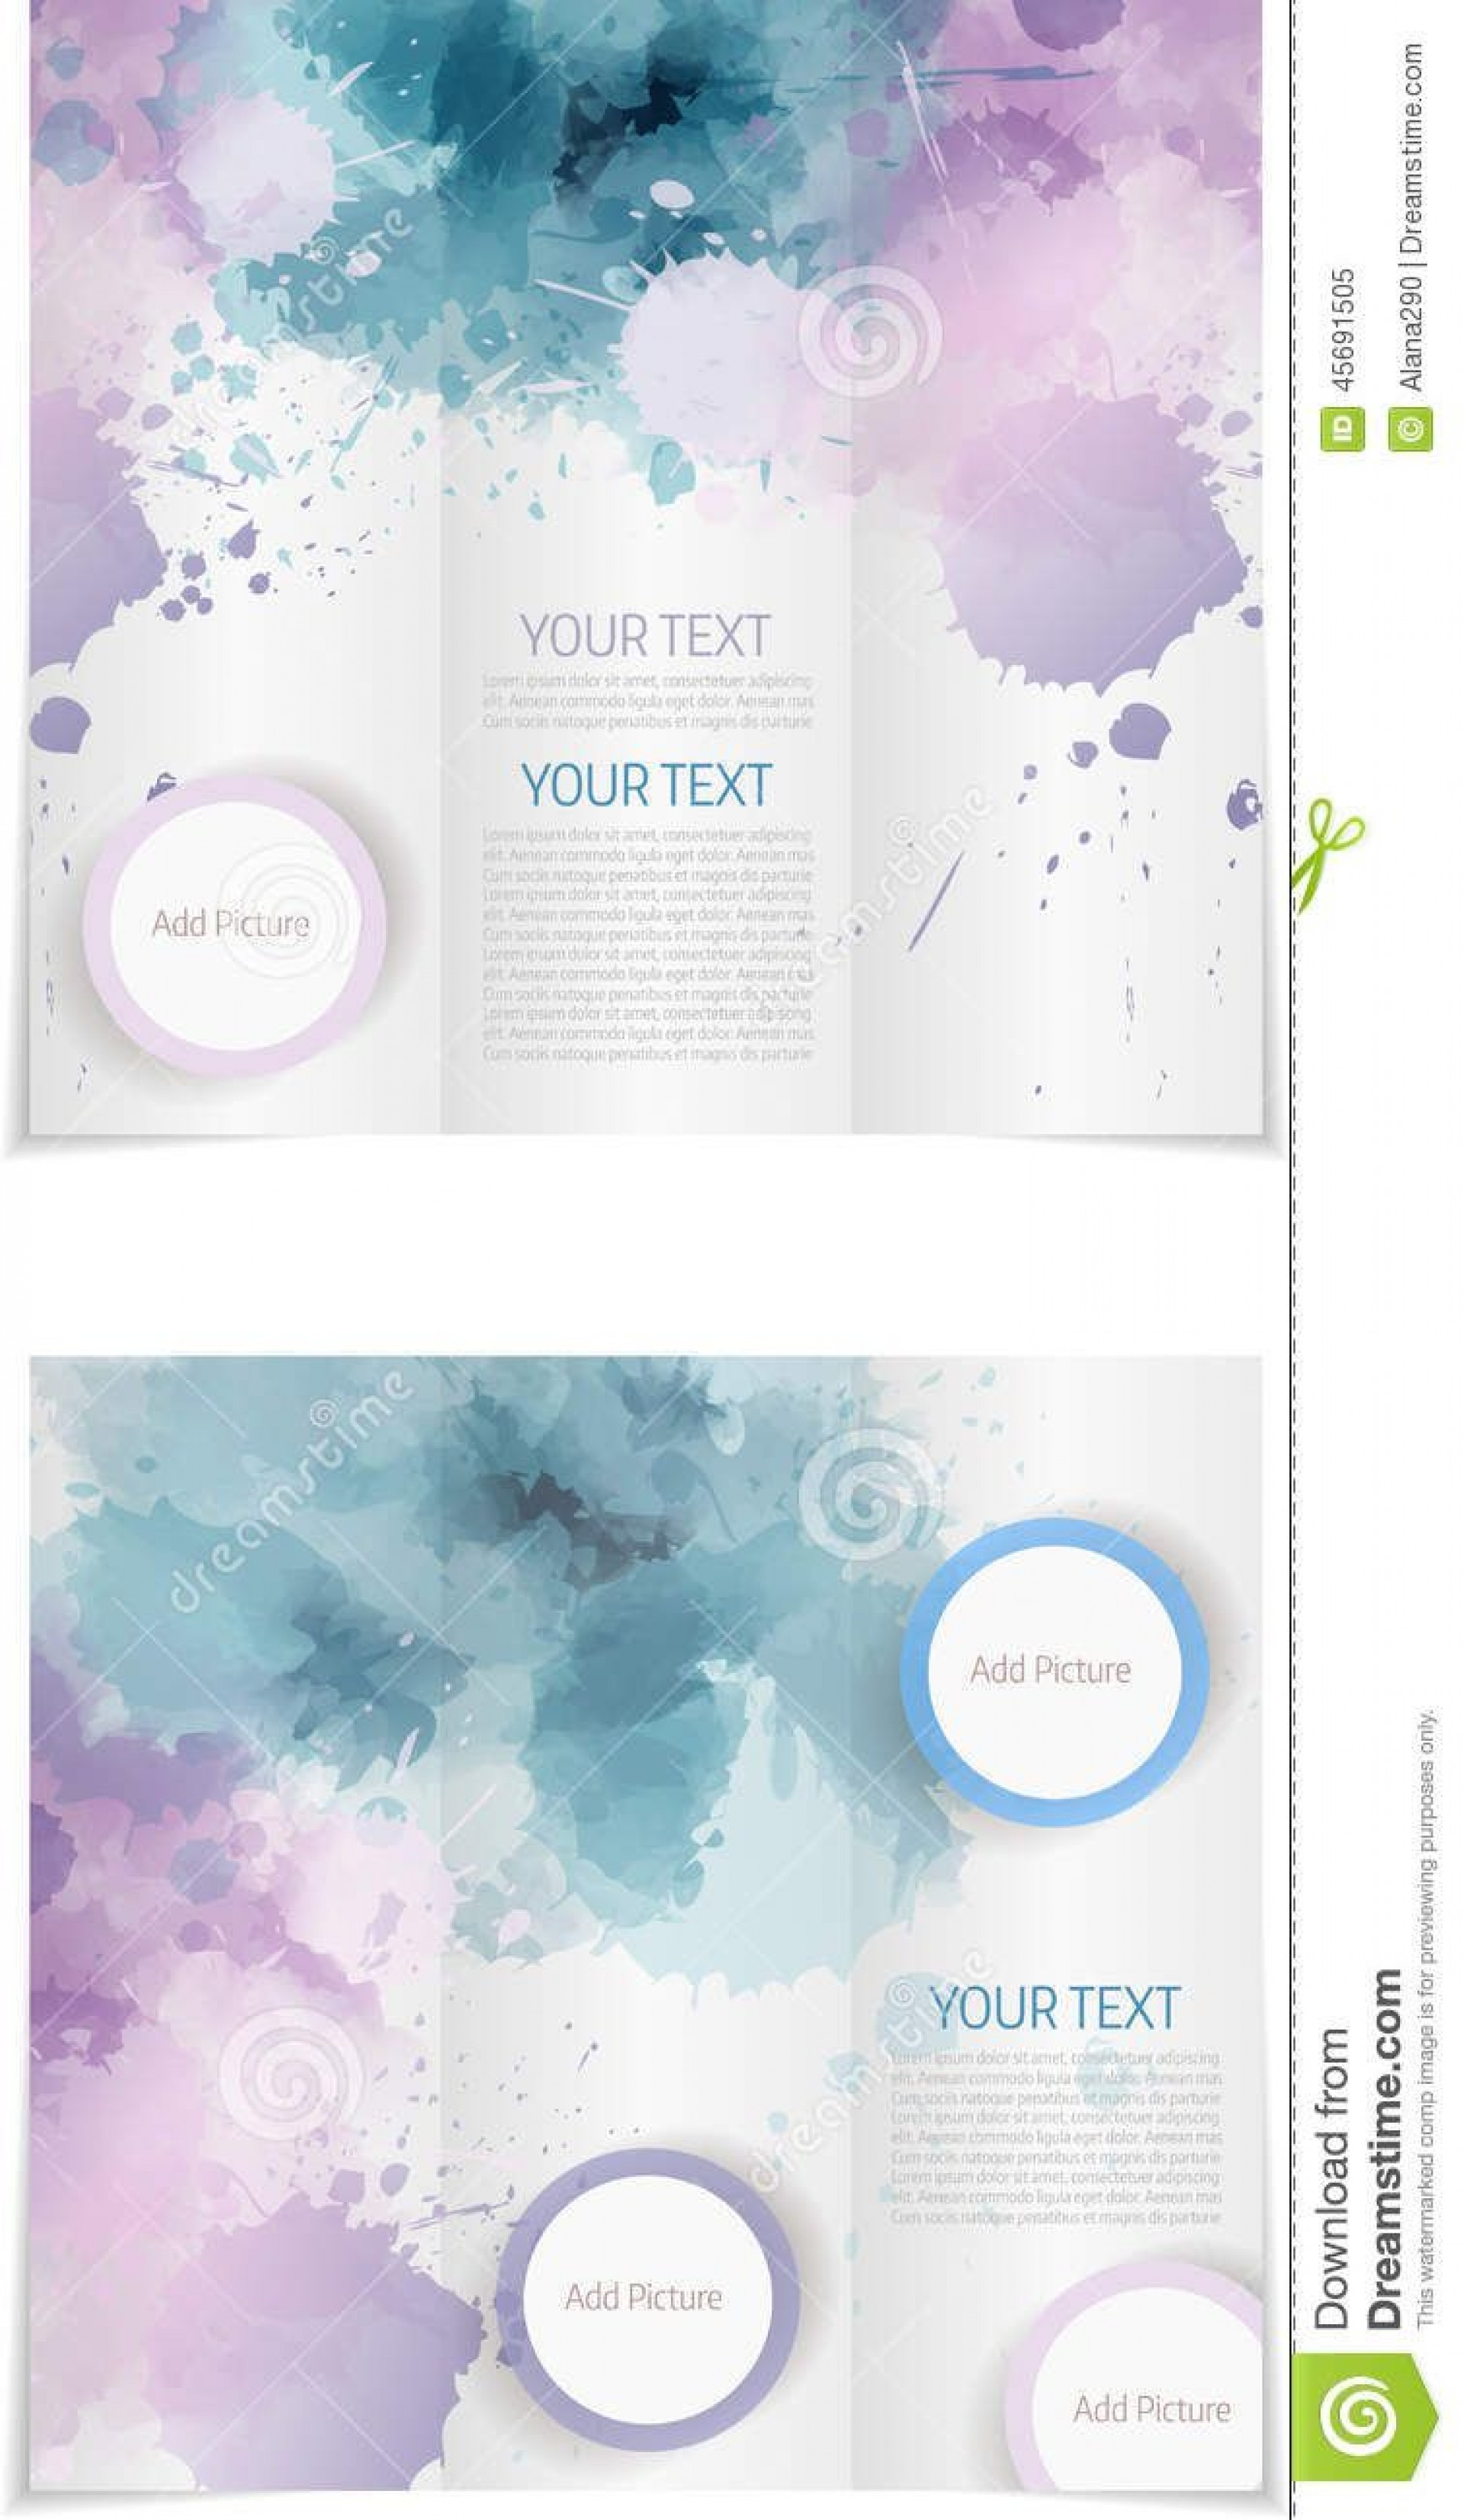 007 Awesome Word Tri Fold Brochure Template Photo  2010 Microsoft M Office1920